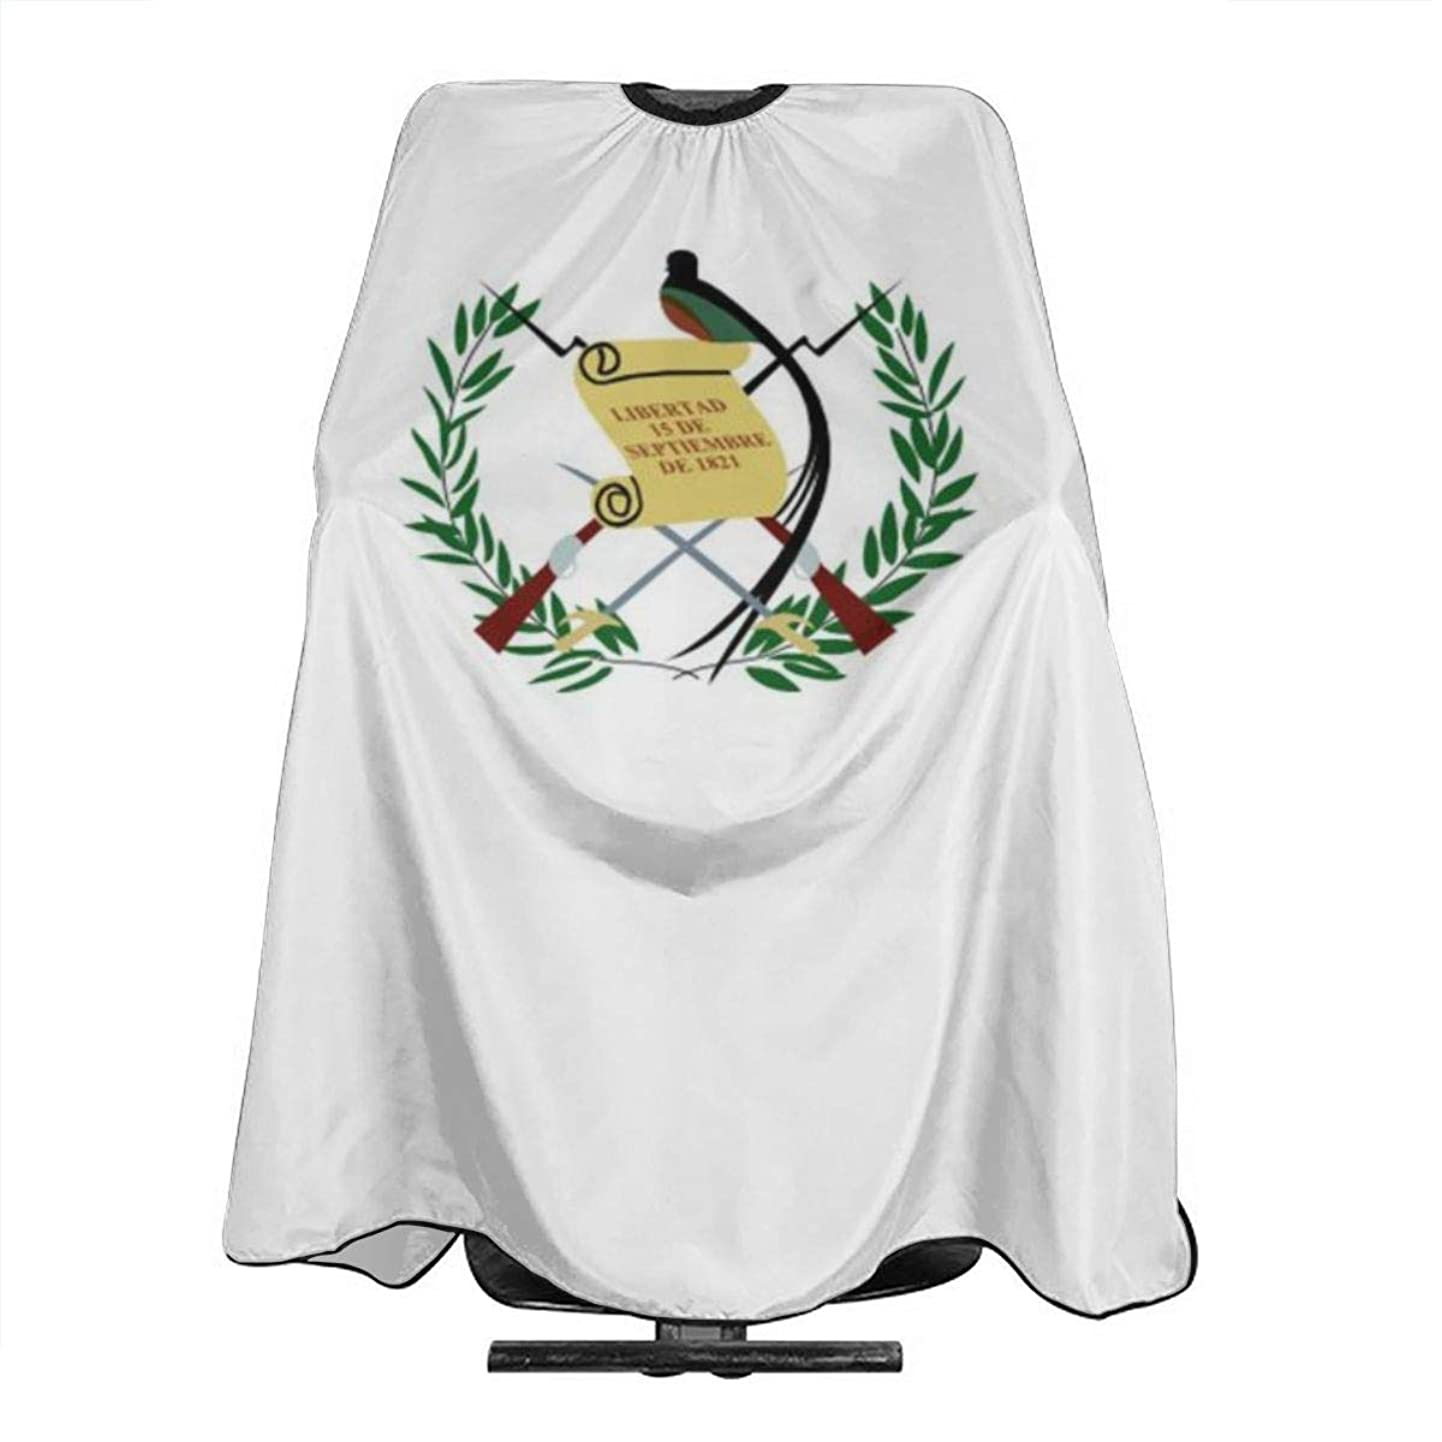 PNNUO Salon Cape Barber Haircut Apron Guatemala Flag with Snap Closure Waterproof Professional Hairdressing Cover for Hair Cutting Cut krpvsweerpn7